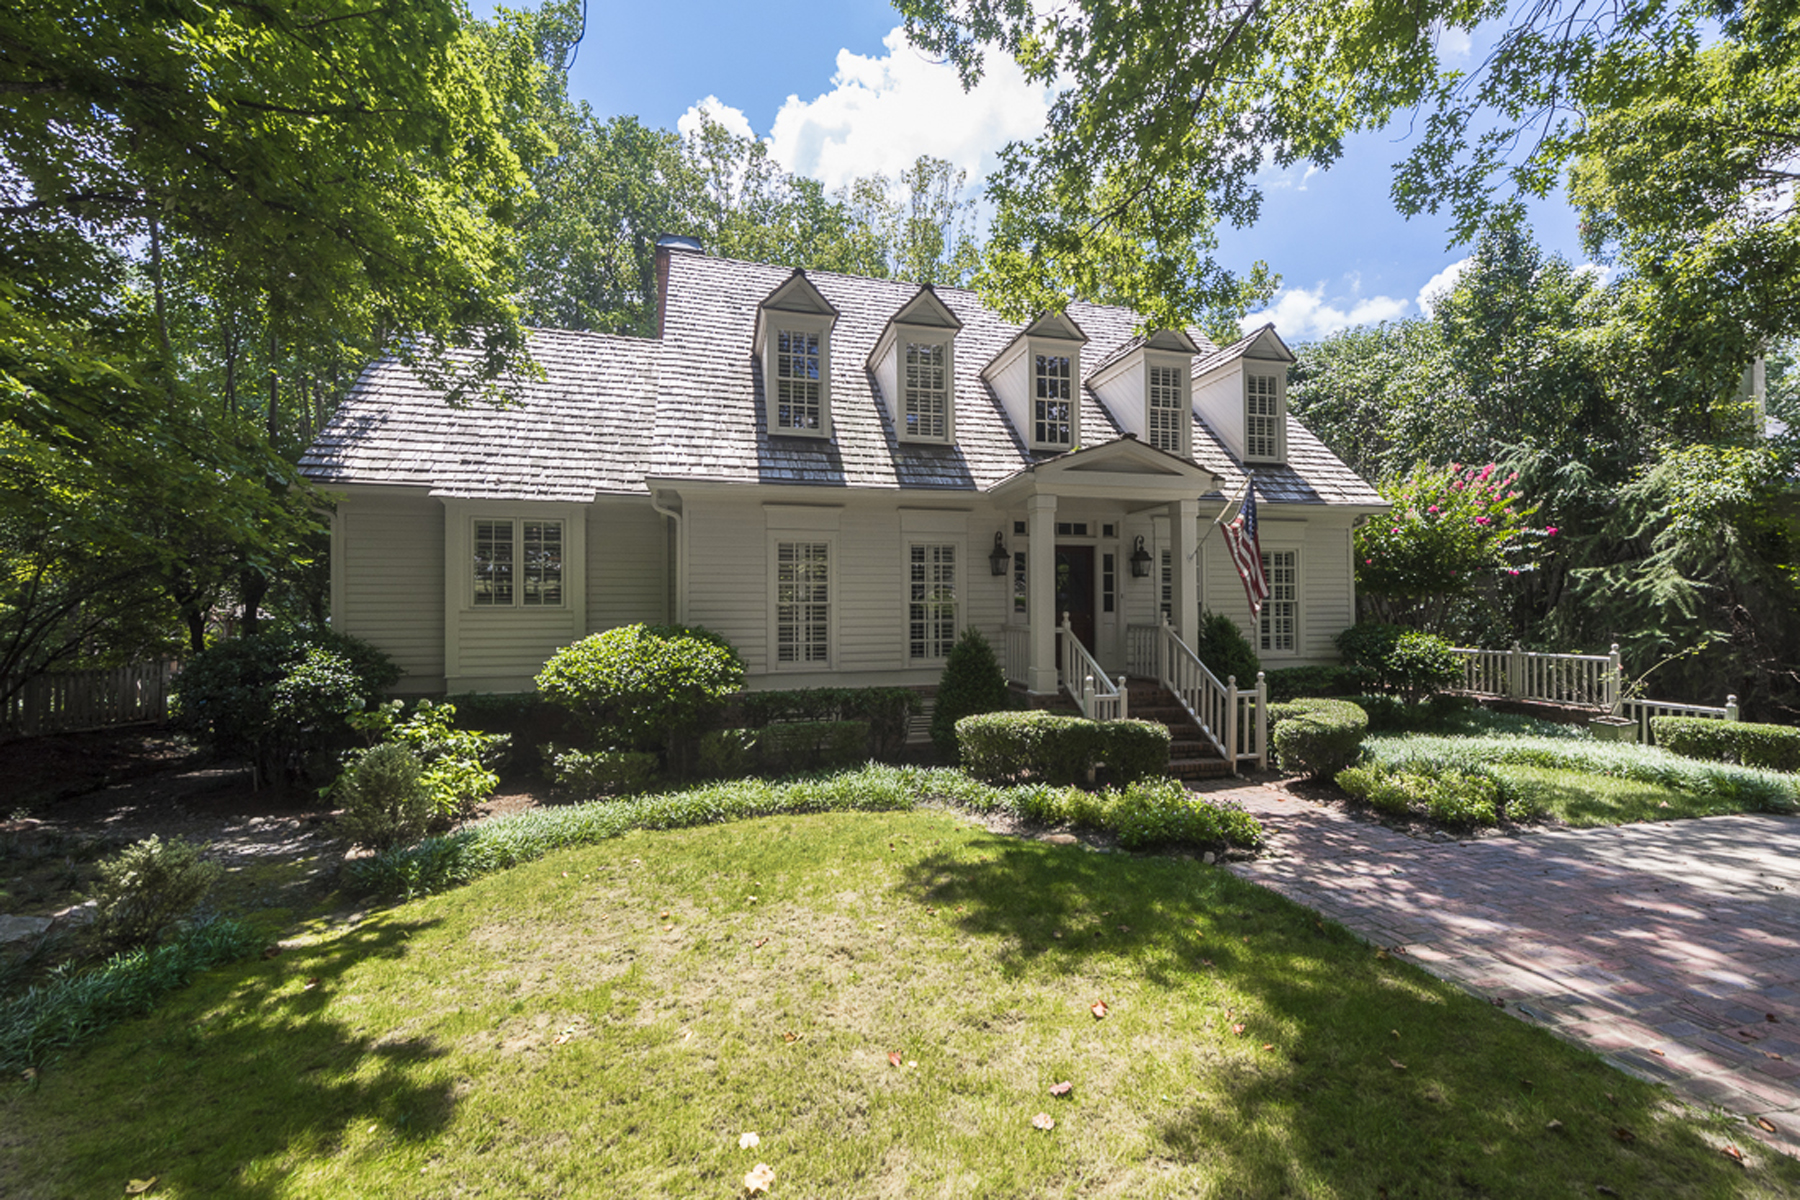 Additional photo for property listing at Beautiful Cape Cod Home In Castlewood 2783 Dover Road NW Atlanta, Georgië 30327 Verenigde Staten